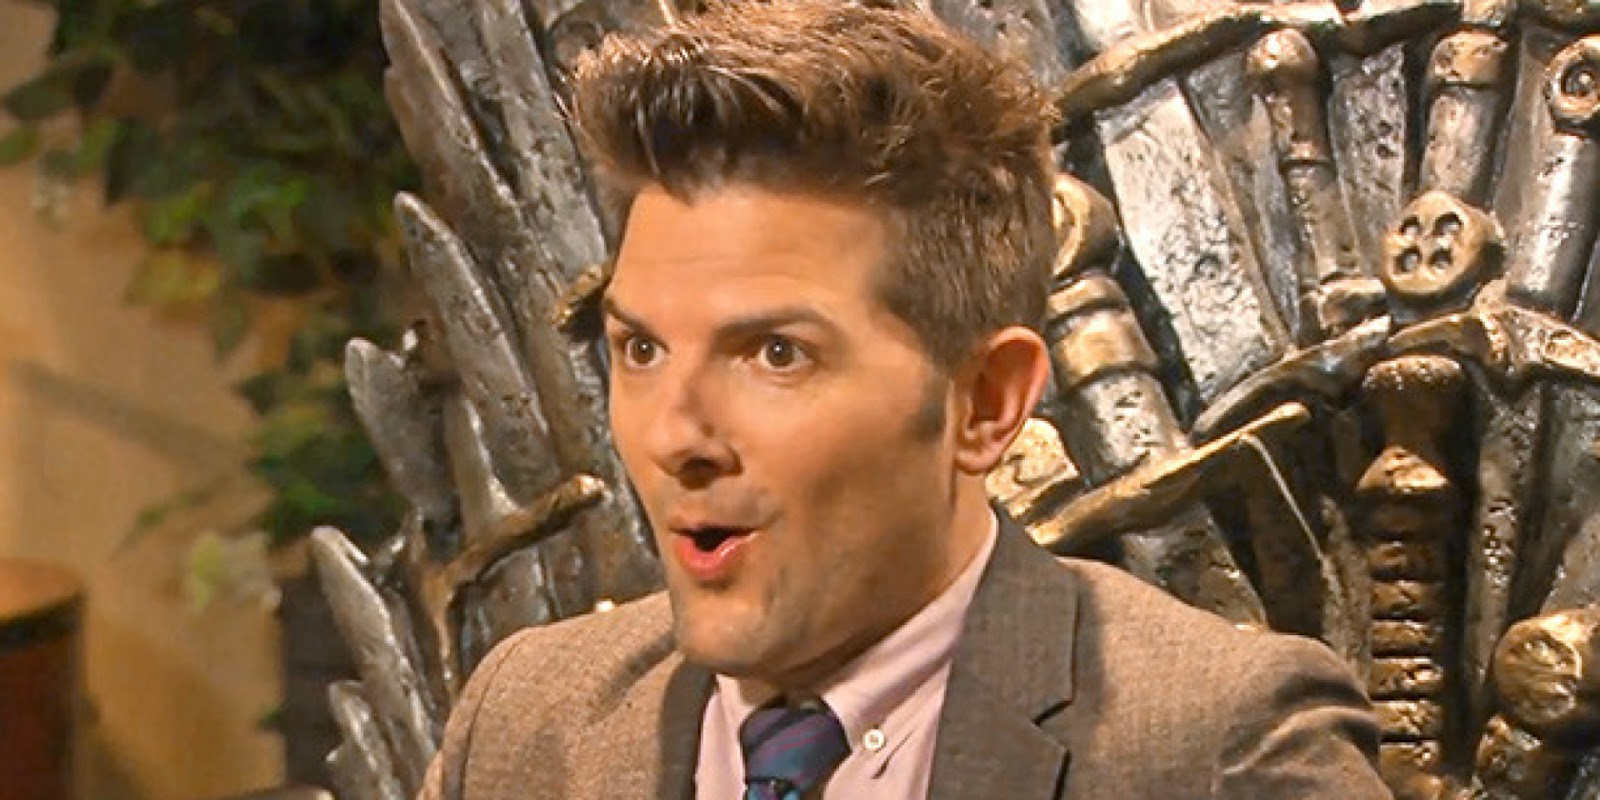 Ben Wyatt en el Trono de Hierro en Parks and Recreation